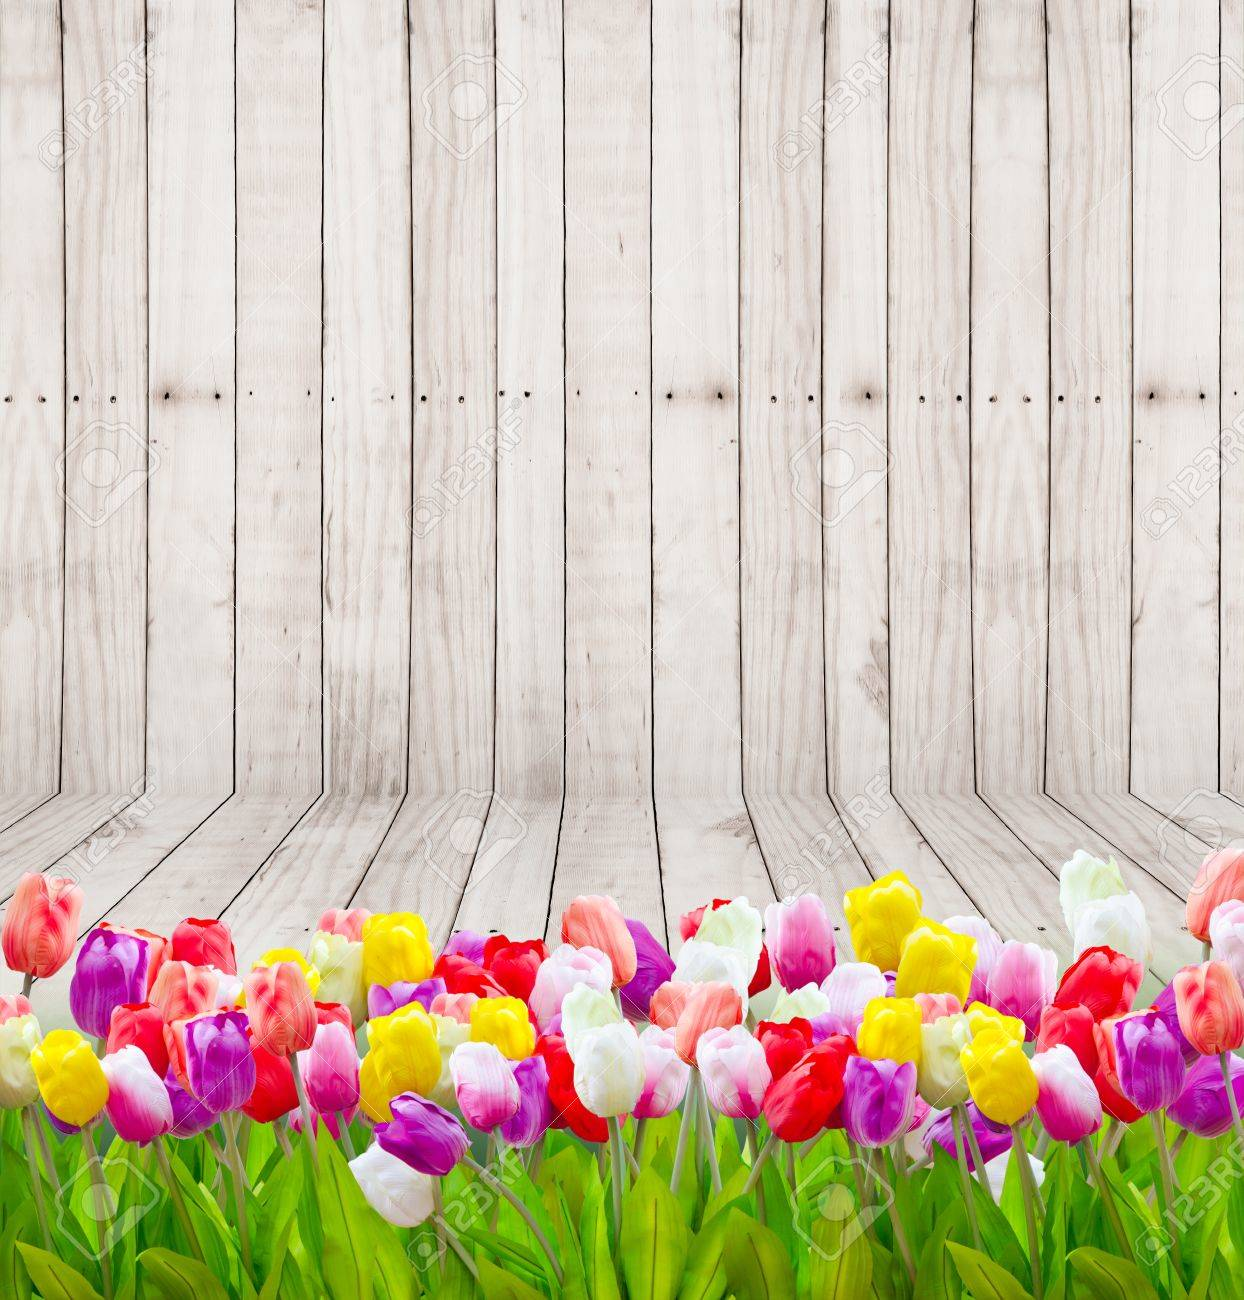 Bouquet tulip flowers on wooden wallpaper background. Stock Photo - 33038894